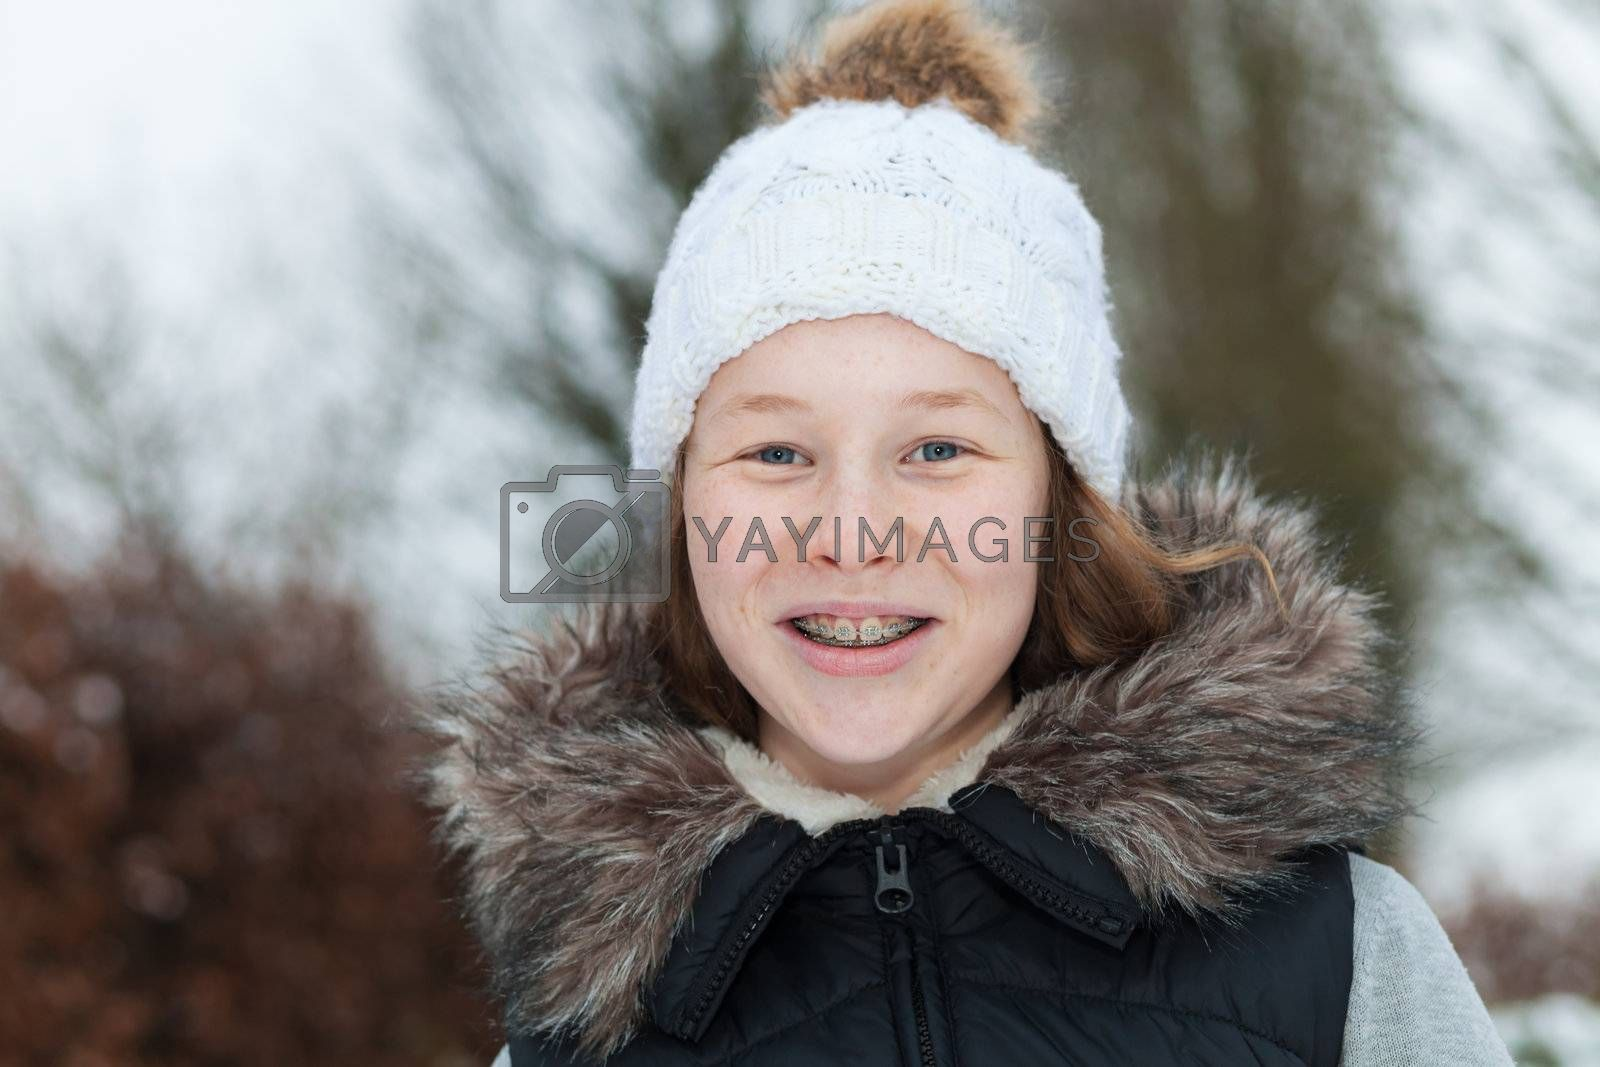 Outdoor portrait of a smiling teenager girl in winter clothing